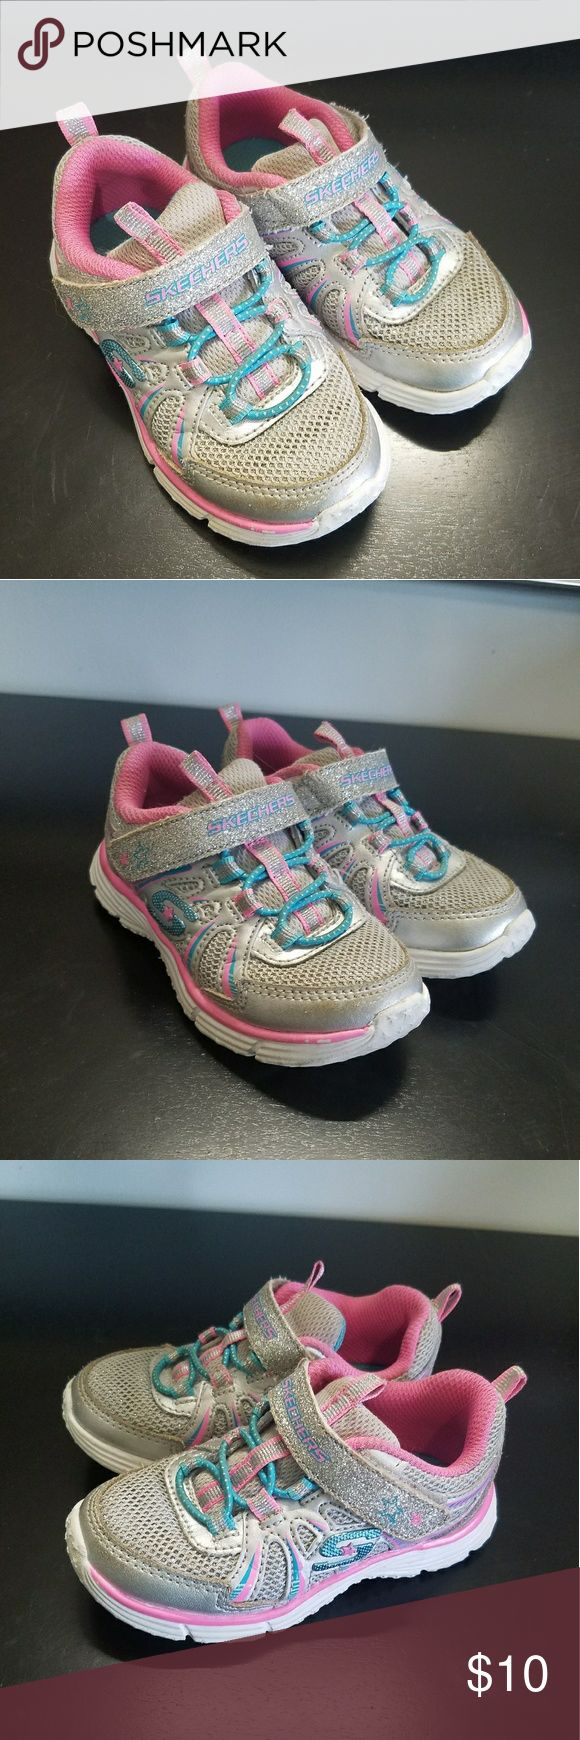 Little Girls Skechers Adorable little girls skechers. In excellent shape for a kids shoe. Pink & Teal with a little glitter here and there. Skechers Shoes Sneakers